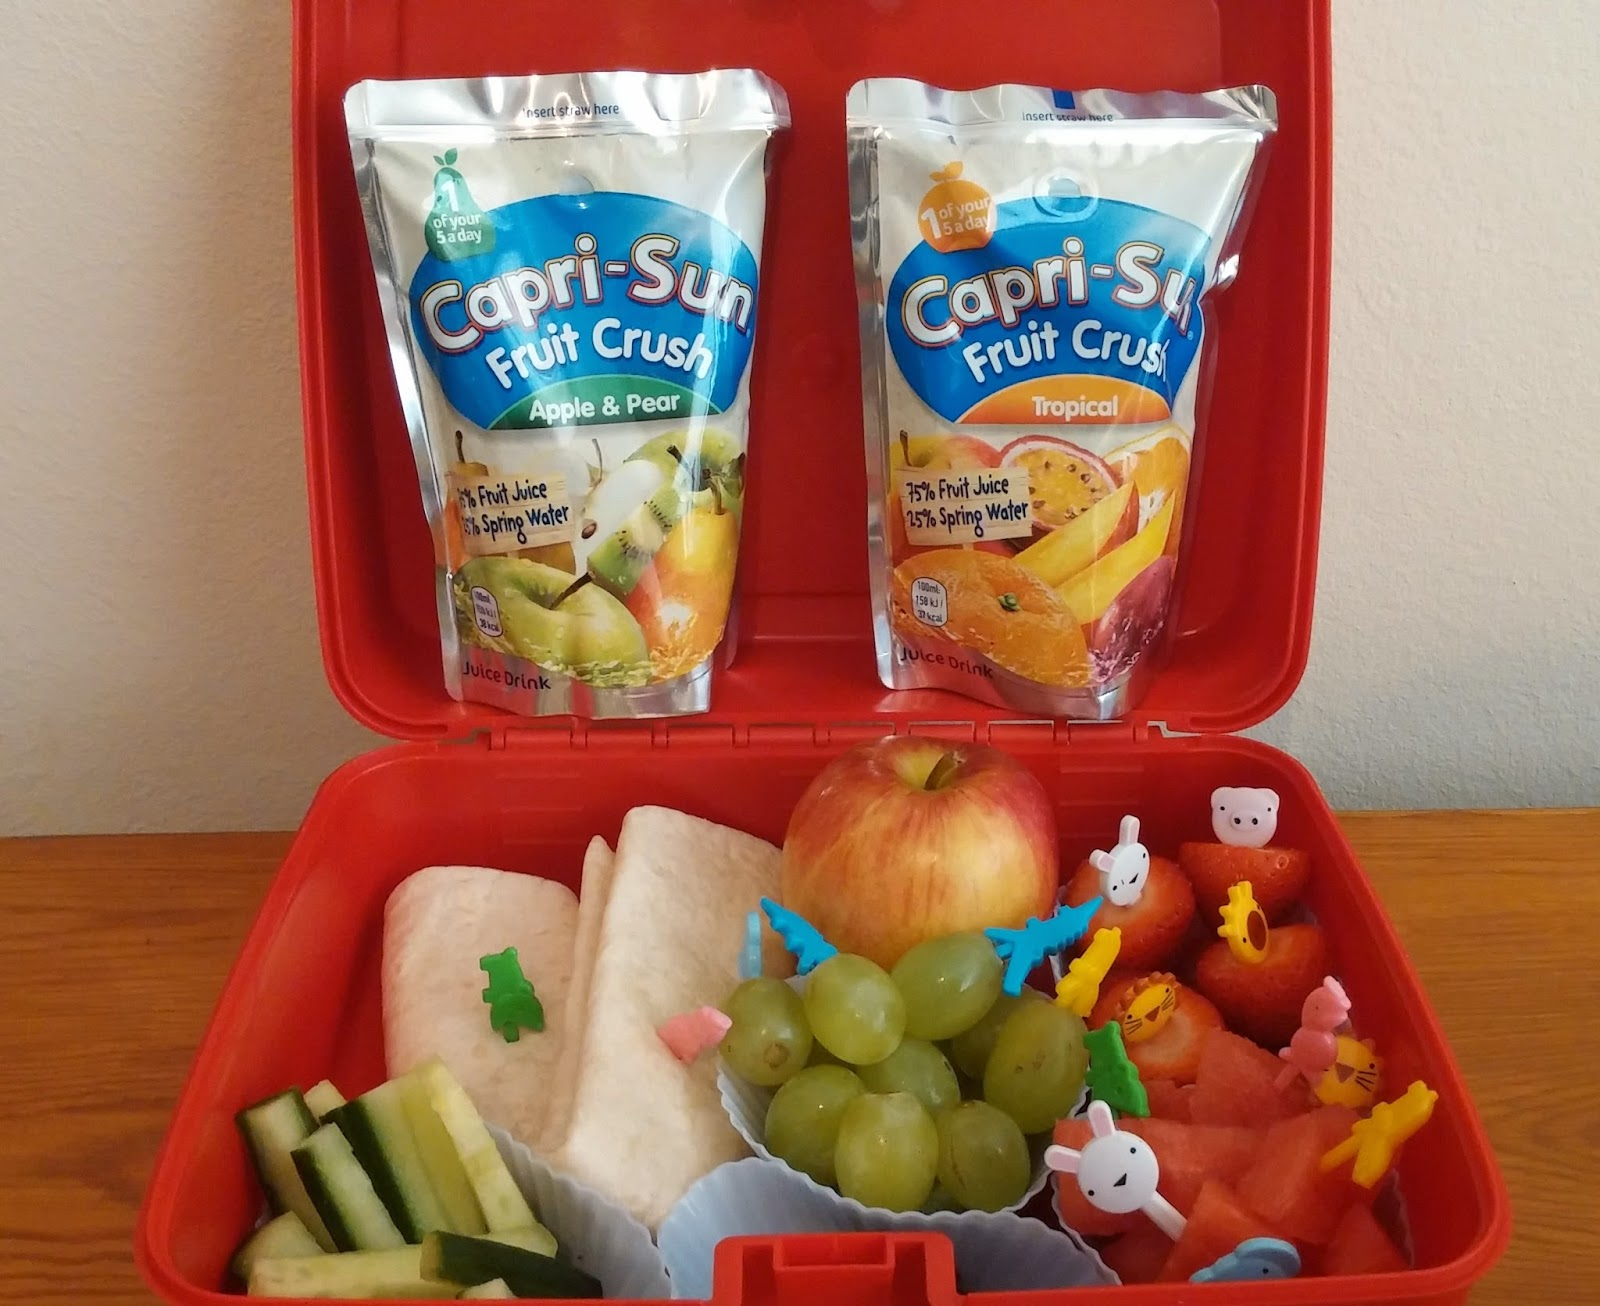 Healthy lunchboxes, Lunchbox ideas, Juice drink, #CapriSunSchool, #cbias, #shop